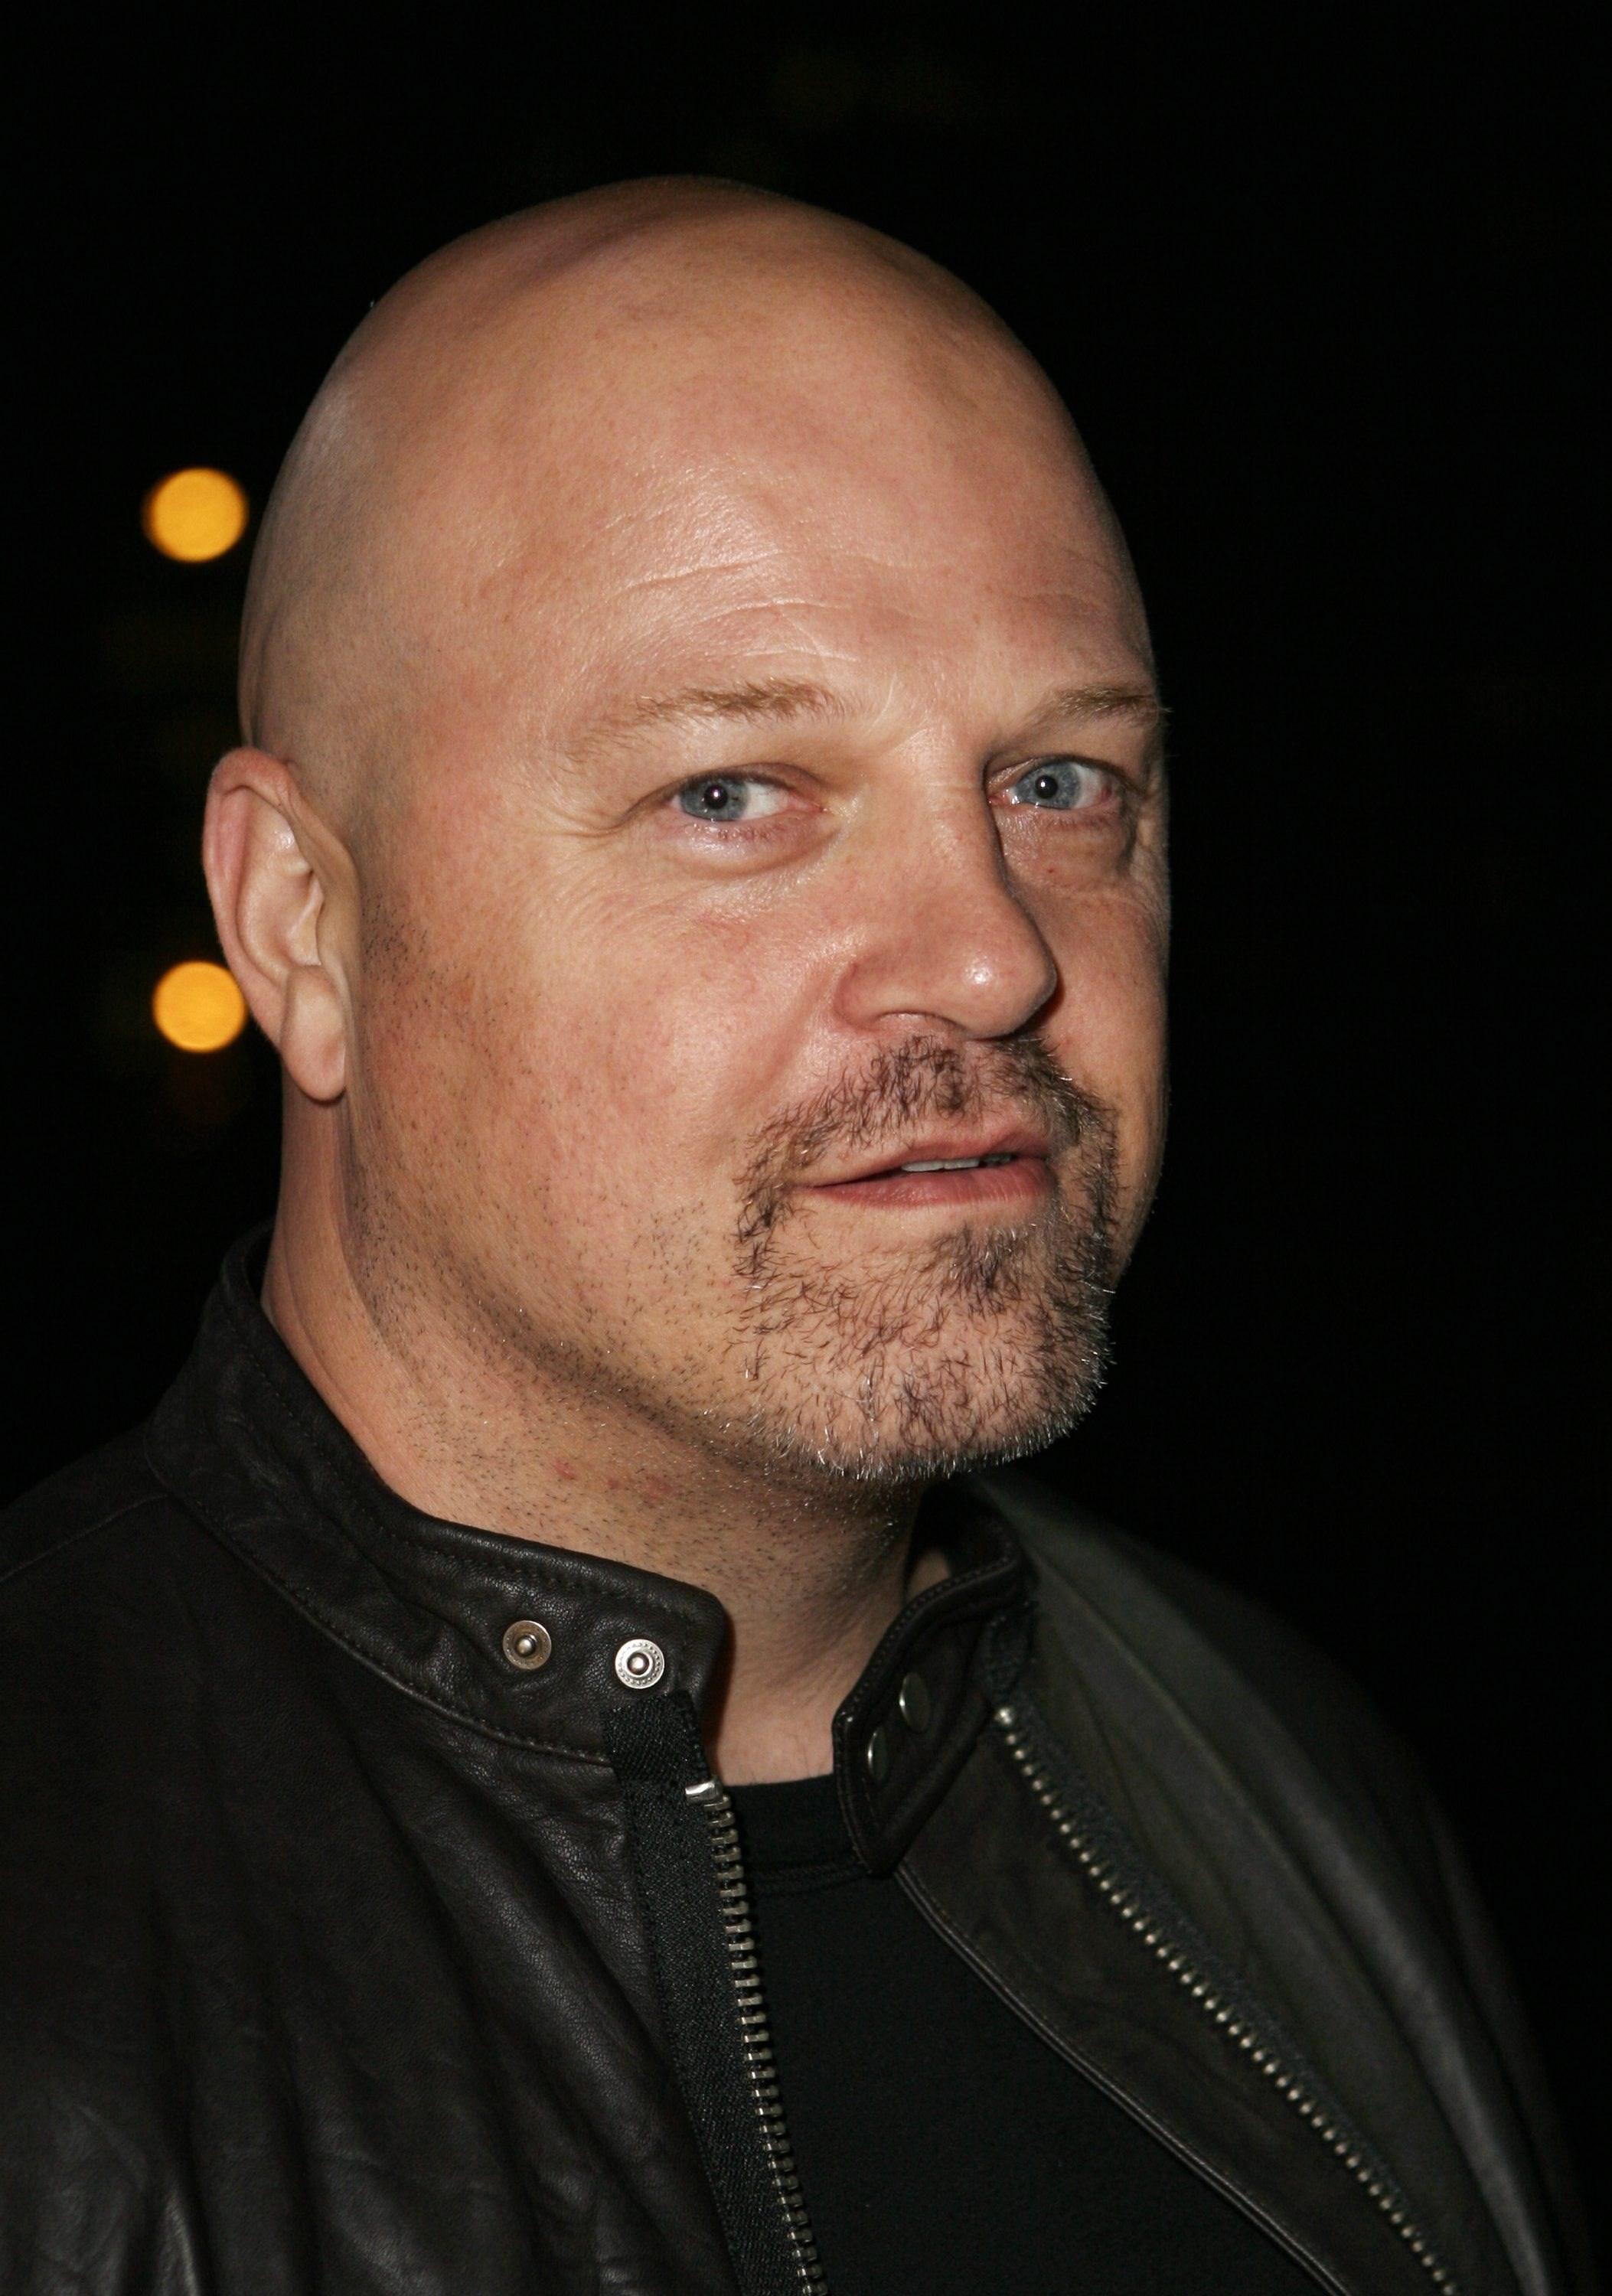 Michael Chiklis | Known people - famous people news and ...